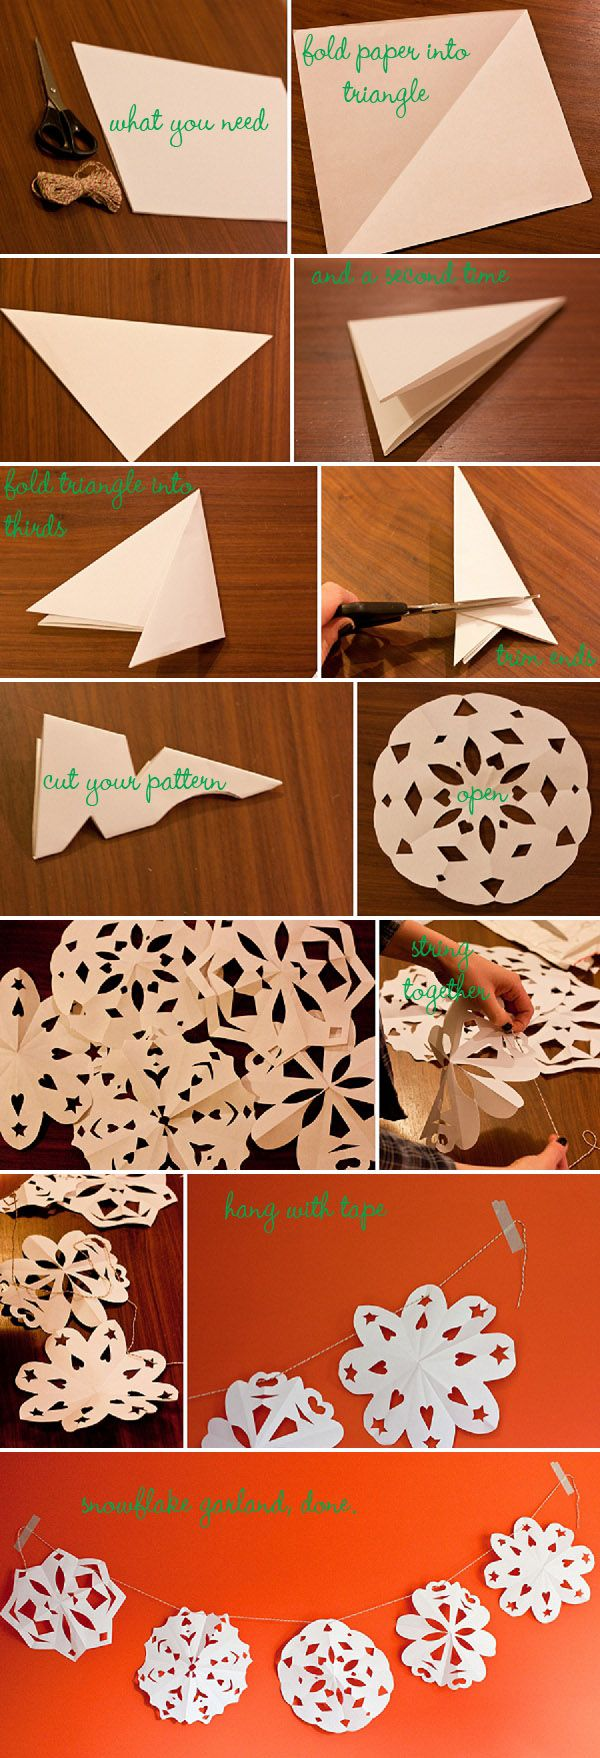 Making a Paper Snowflake Garland, Sunday Ramble & Sneak Peek | Whimsical Wonderland Weddings  @Lori Westley Walker